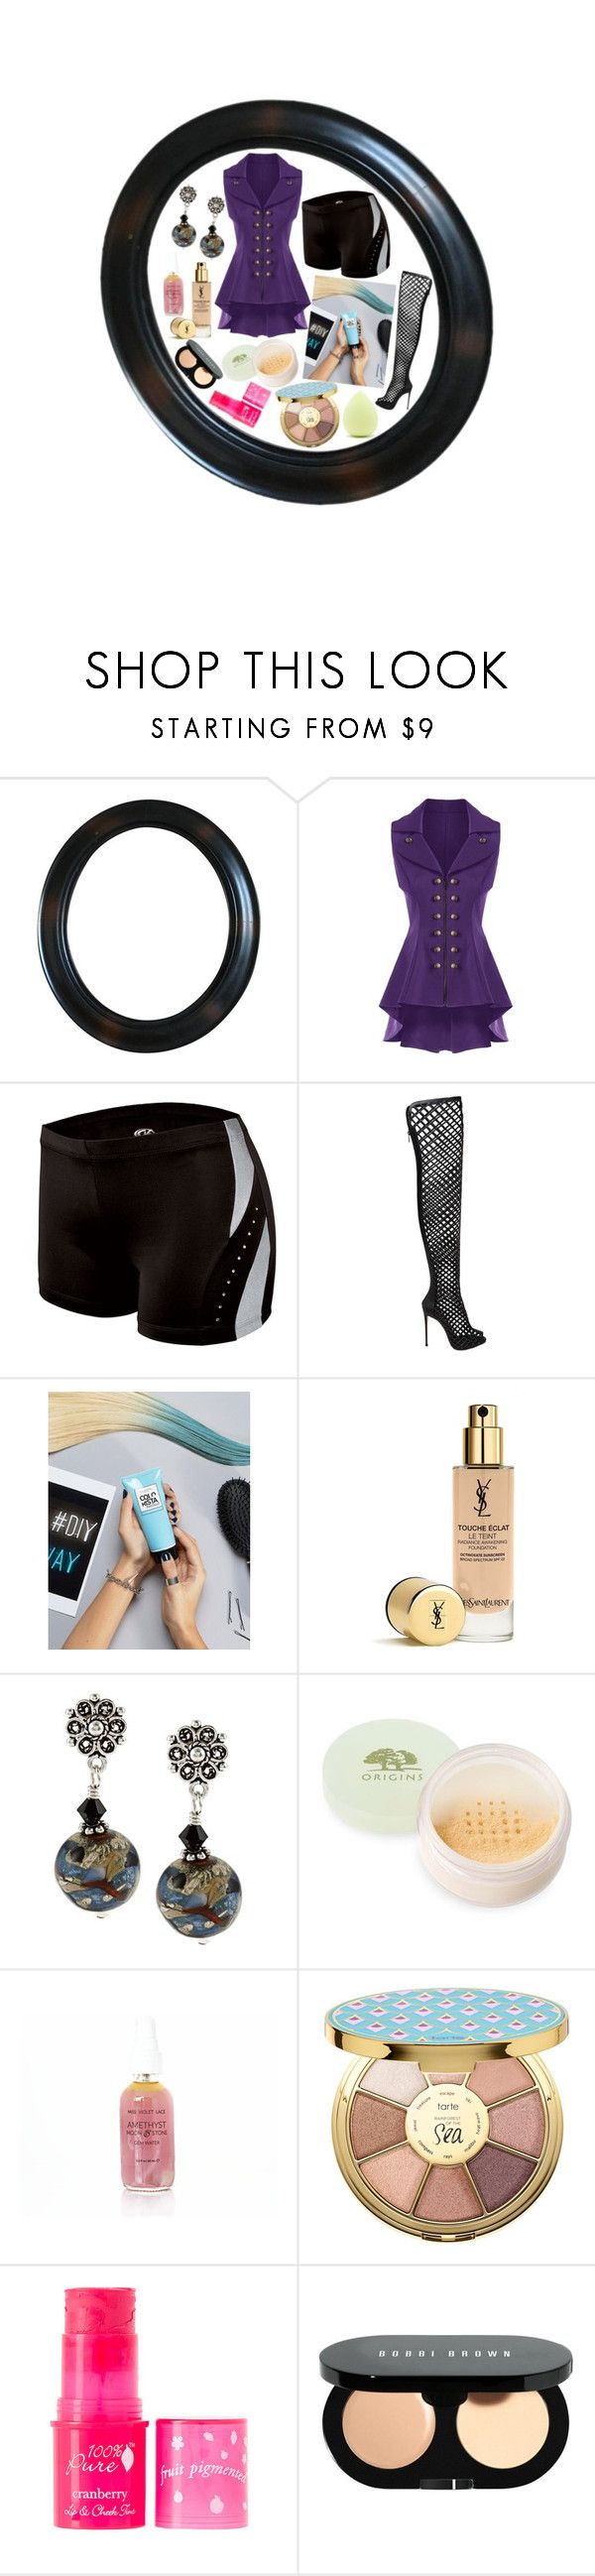 """""""Untitled #730"""" by yasm-ina ❤ liked on Polyvore featuring Le Silla, L'Oréal Paris, Yves Saint Laurent, Origins, tarte, 100% Pure, Bobbi Brown Cosmetics and Forever 21"""